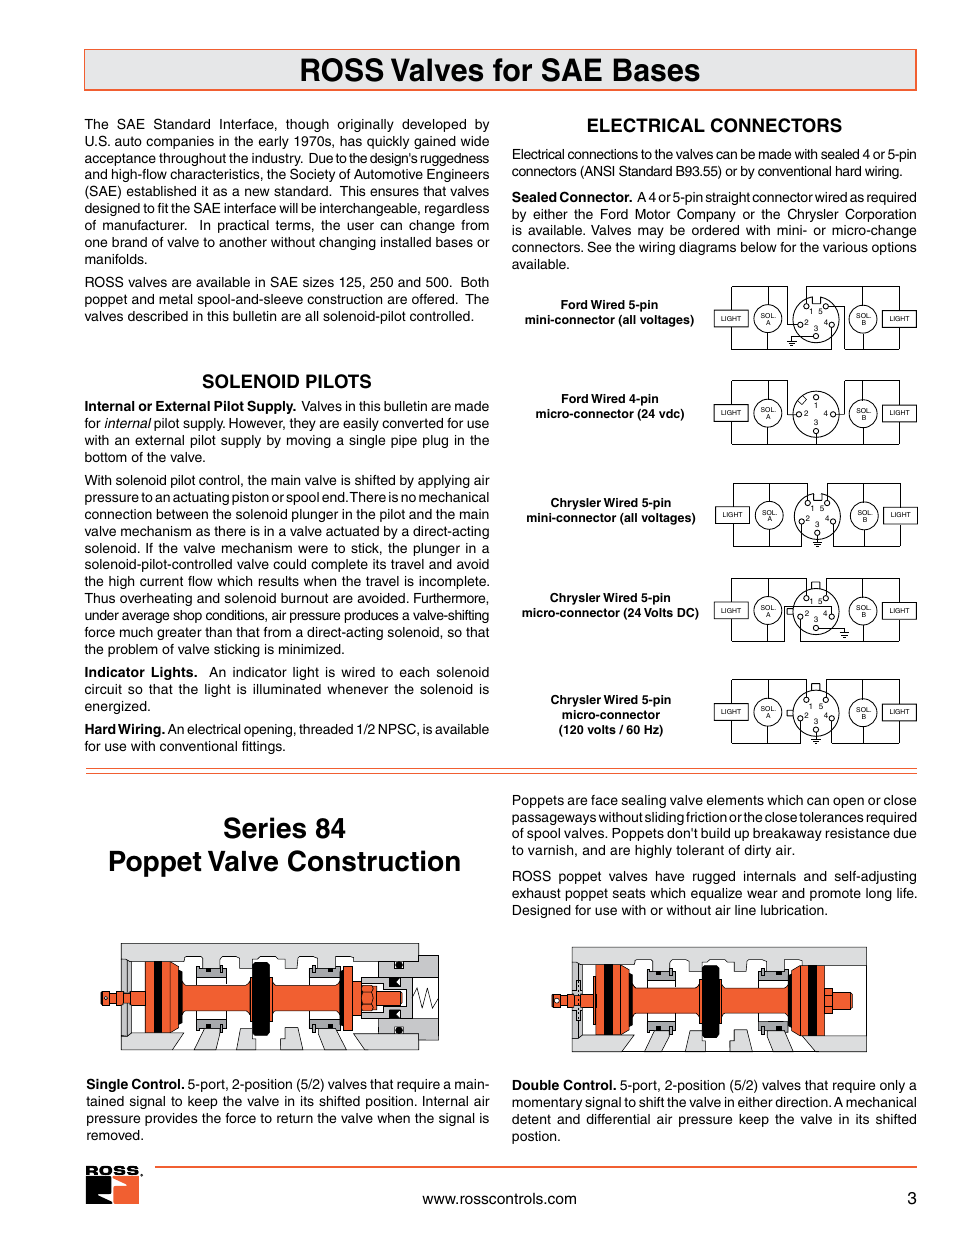 Ross Valve Wiring Diagram Schematics Diagrams Avs Box Controls Spool Sleeve Series W80 User Manual 7 Pages Rh Manualsdir Com